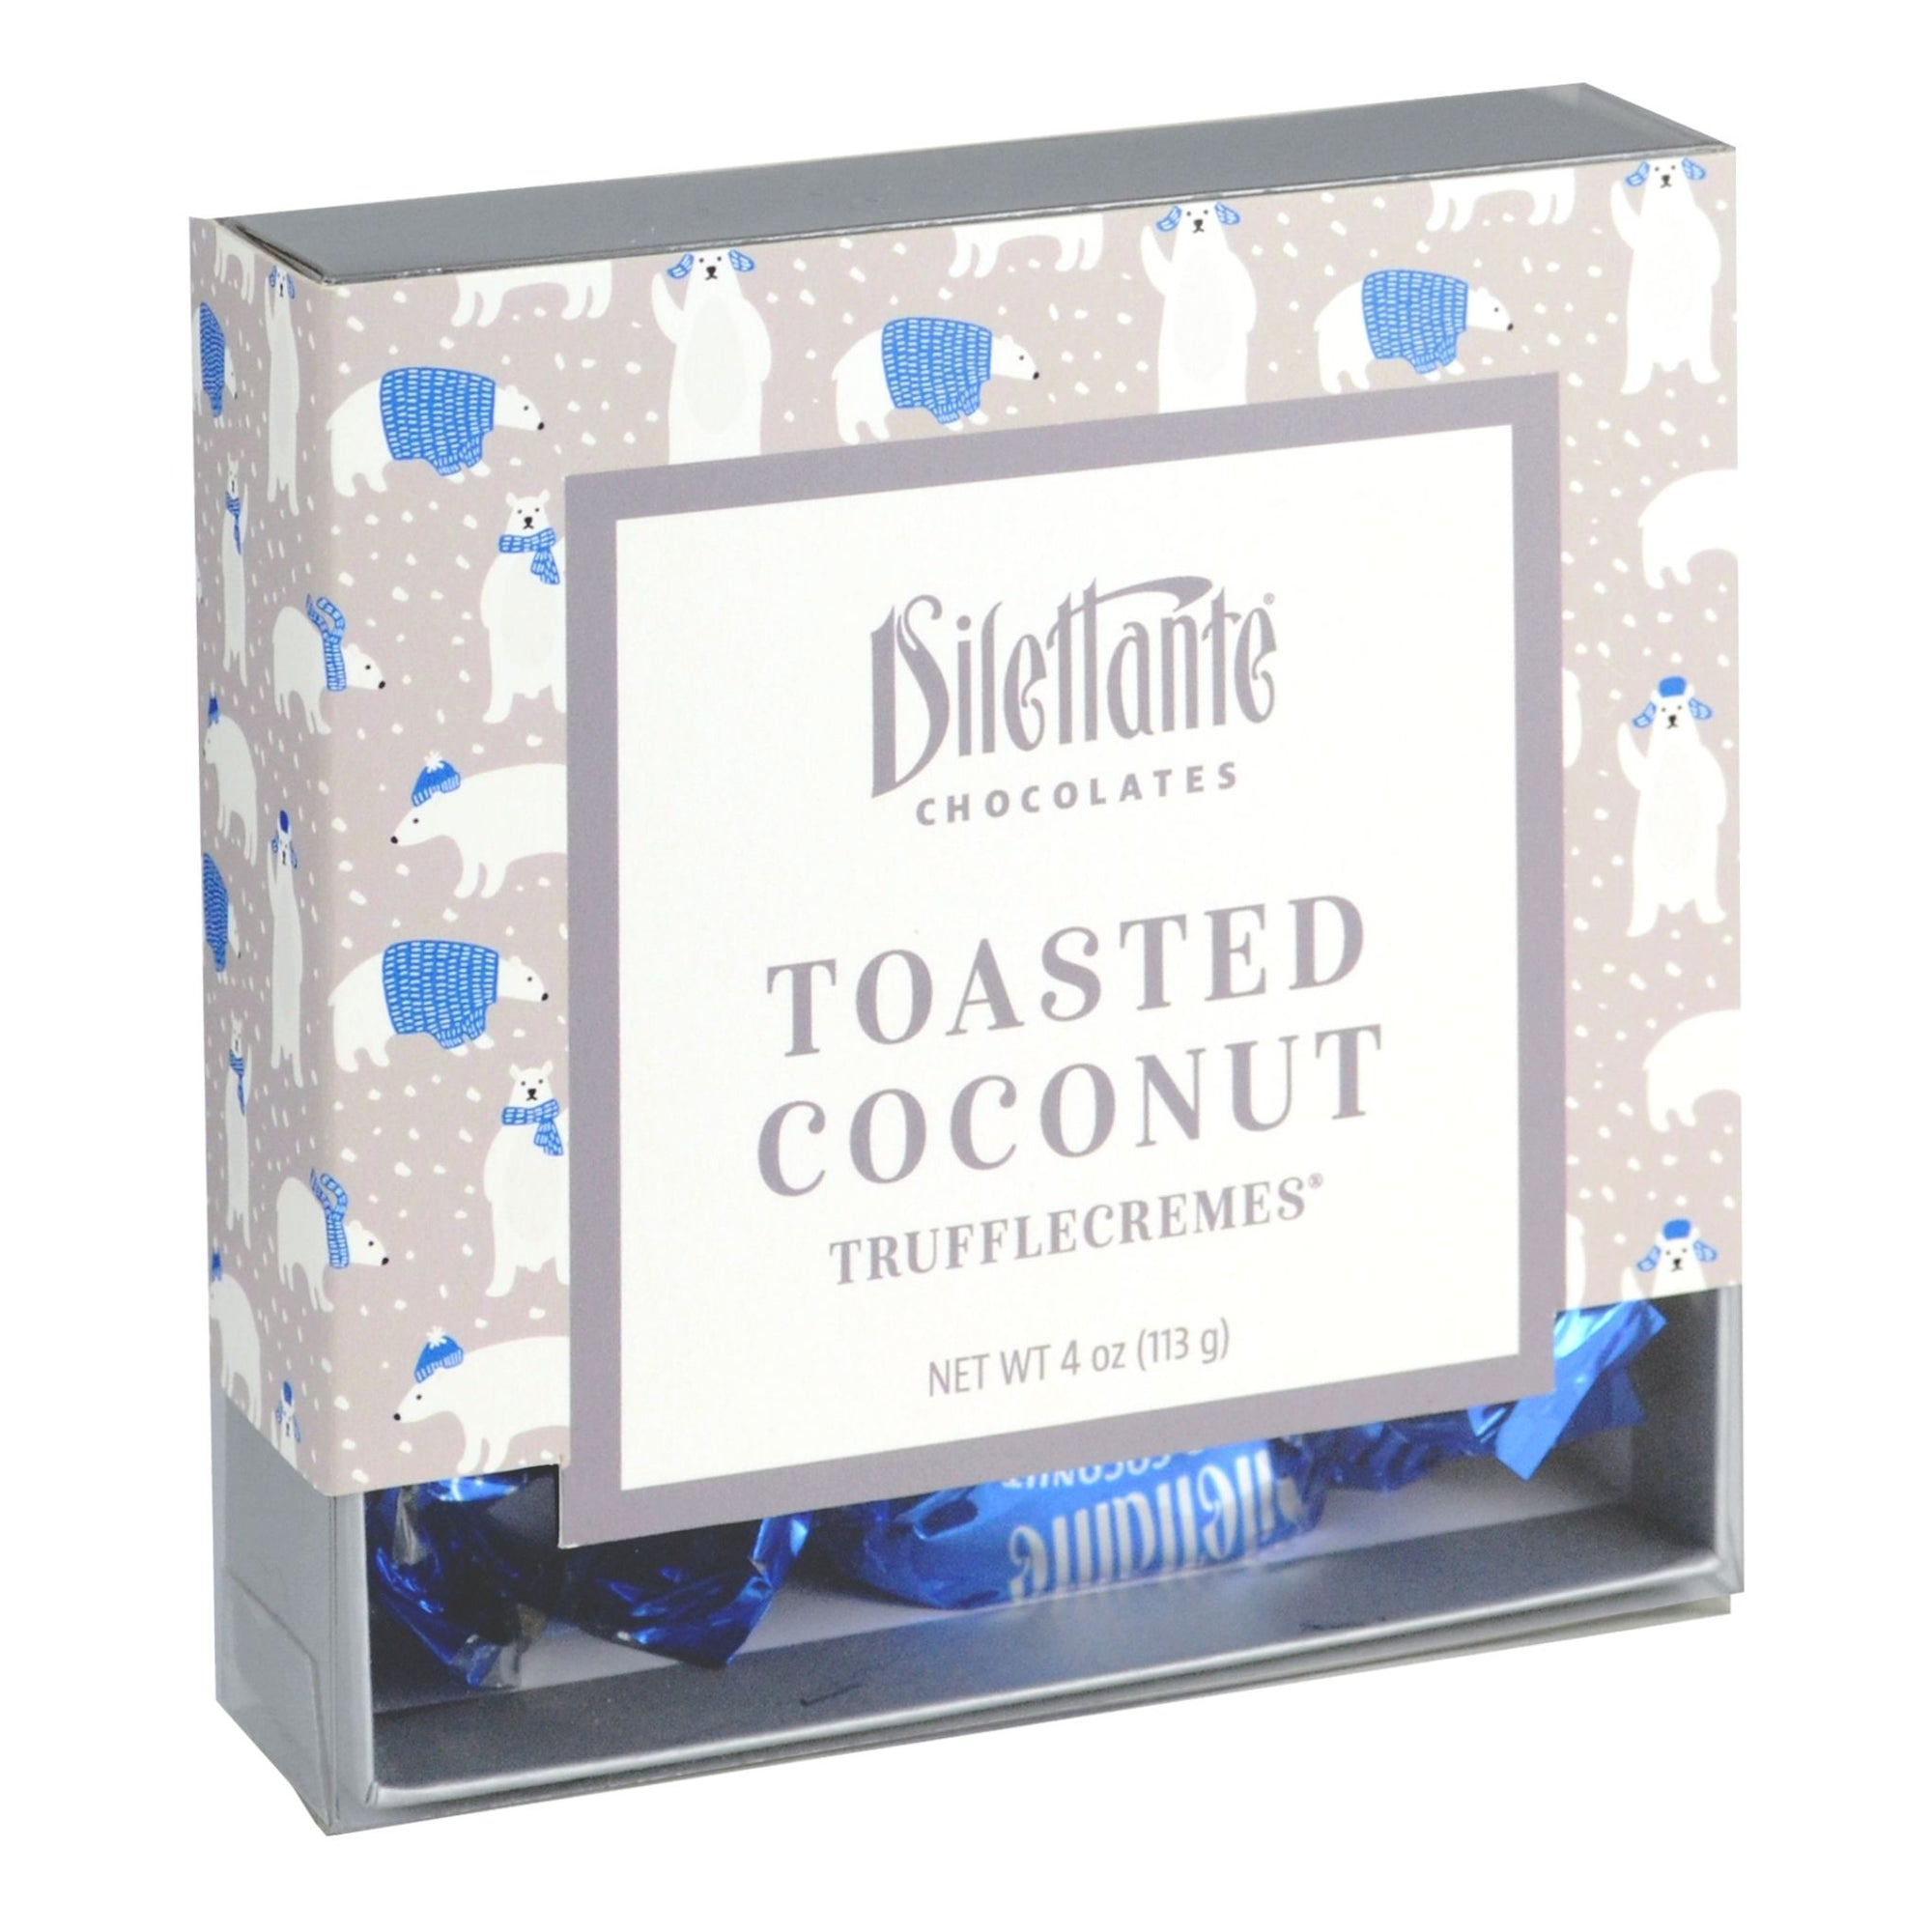 Dilettante Chocolates Toasted Coconut TruffleCreme Novelty Gift Box with Illustrations of Polar Bears